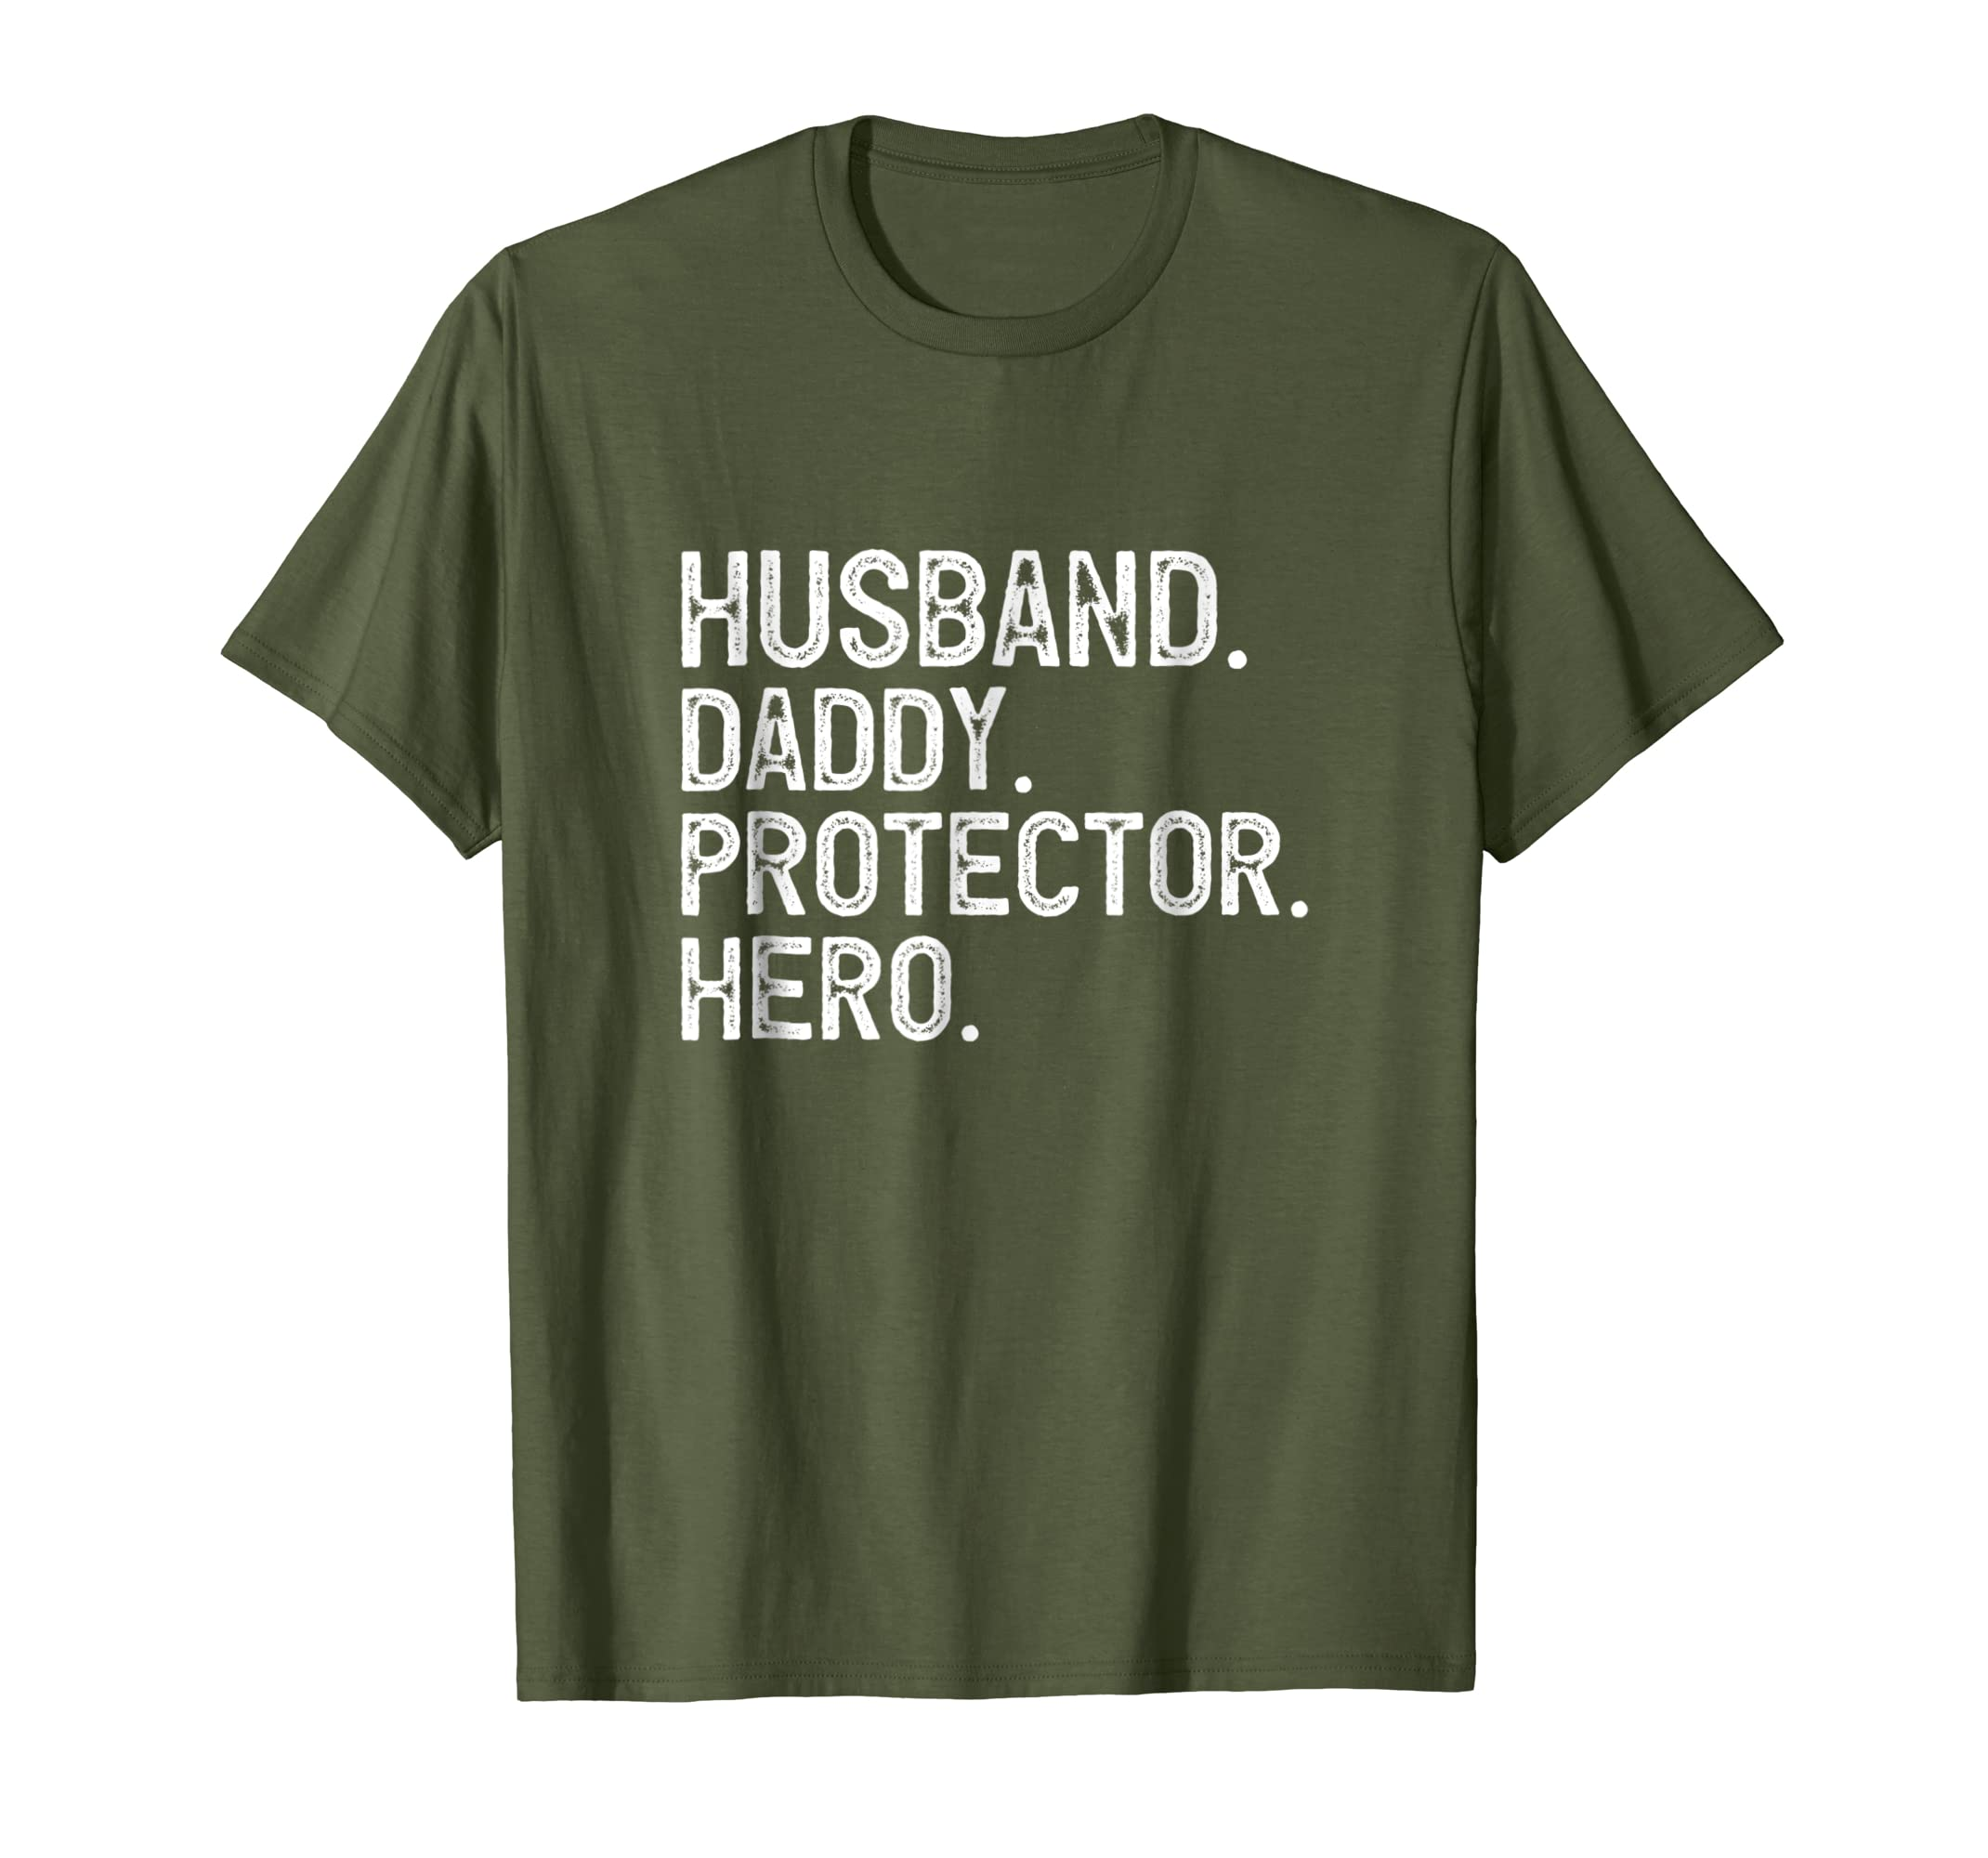 98436ba8 Amazon.com: Mens Husband Daddy Protector Hero T-Shirt Father's Day Gift:  Clothing